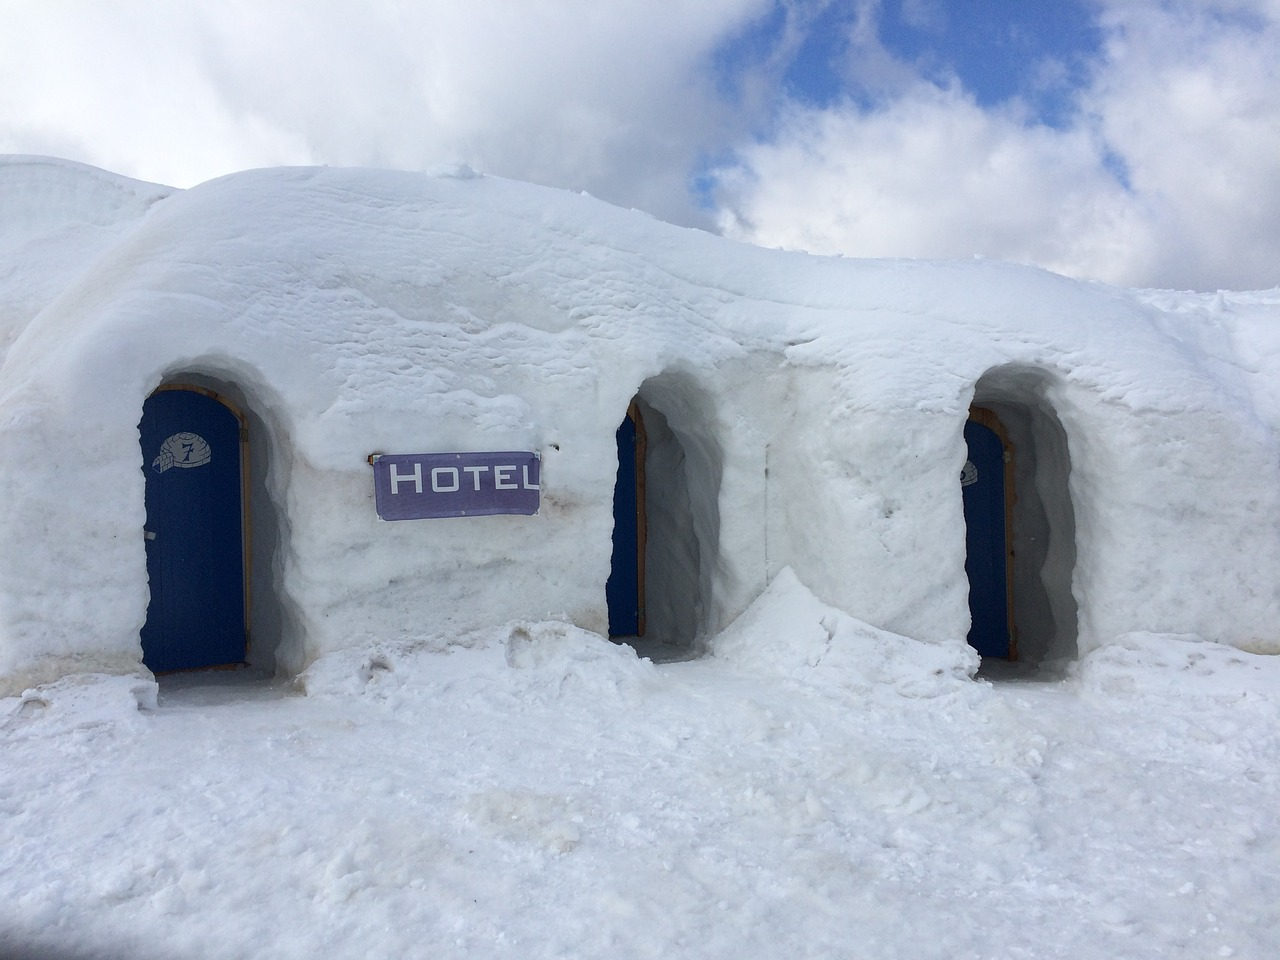 igloo hotel, abandoned hotels